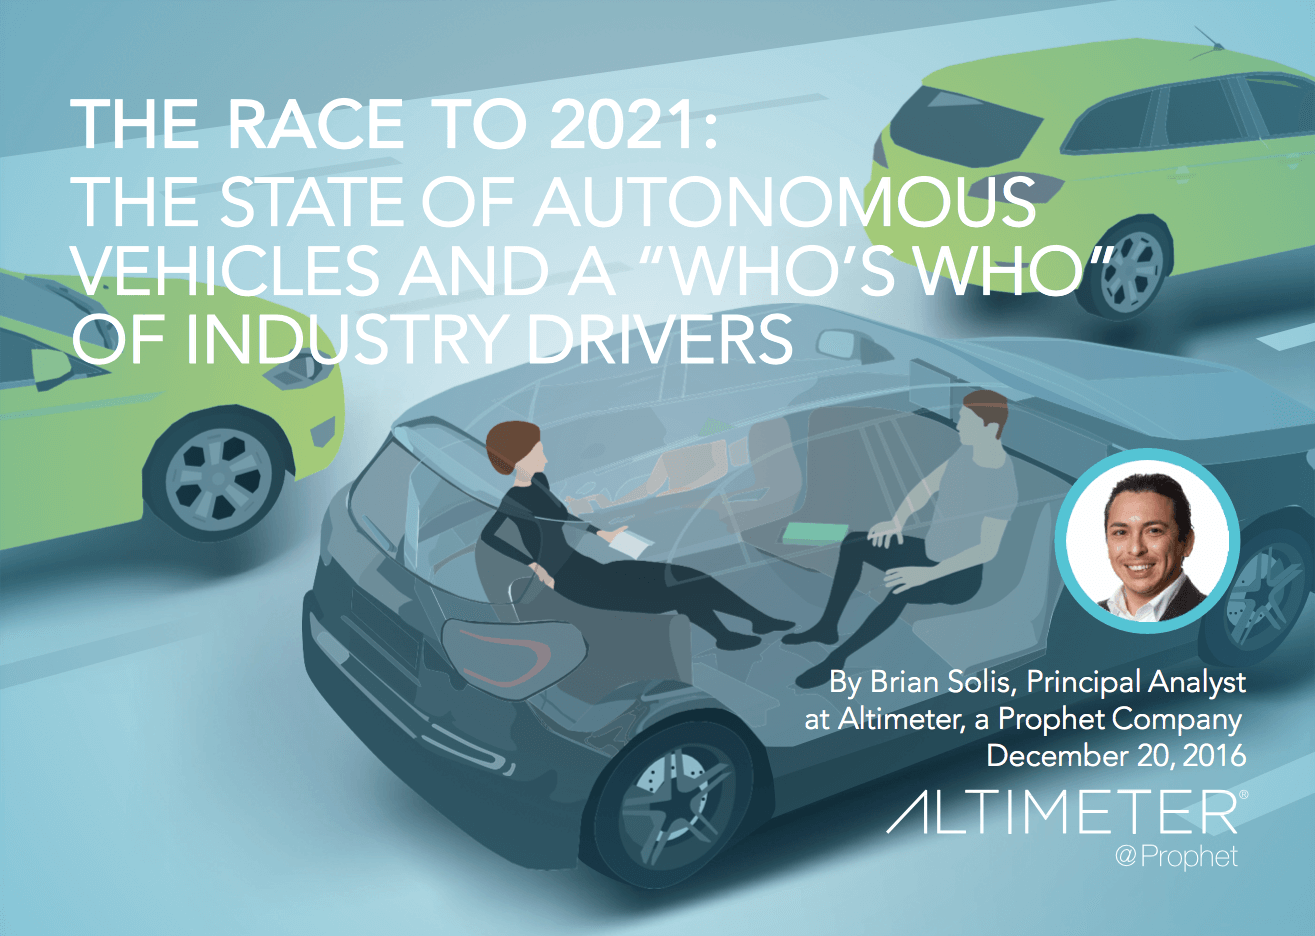 """""""The Race to 2021"""", a report by Brian Solis on the state of autonomous vehicles."""